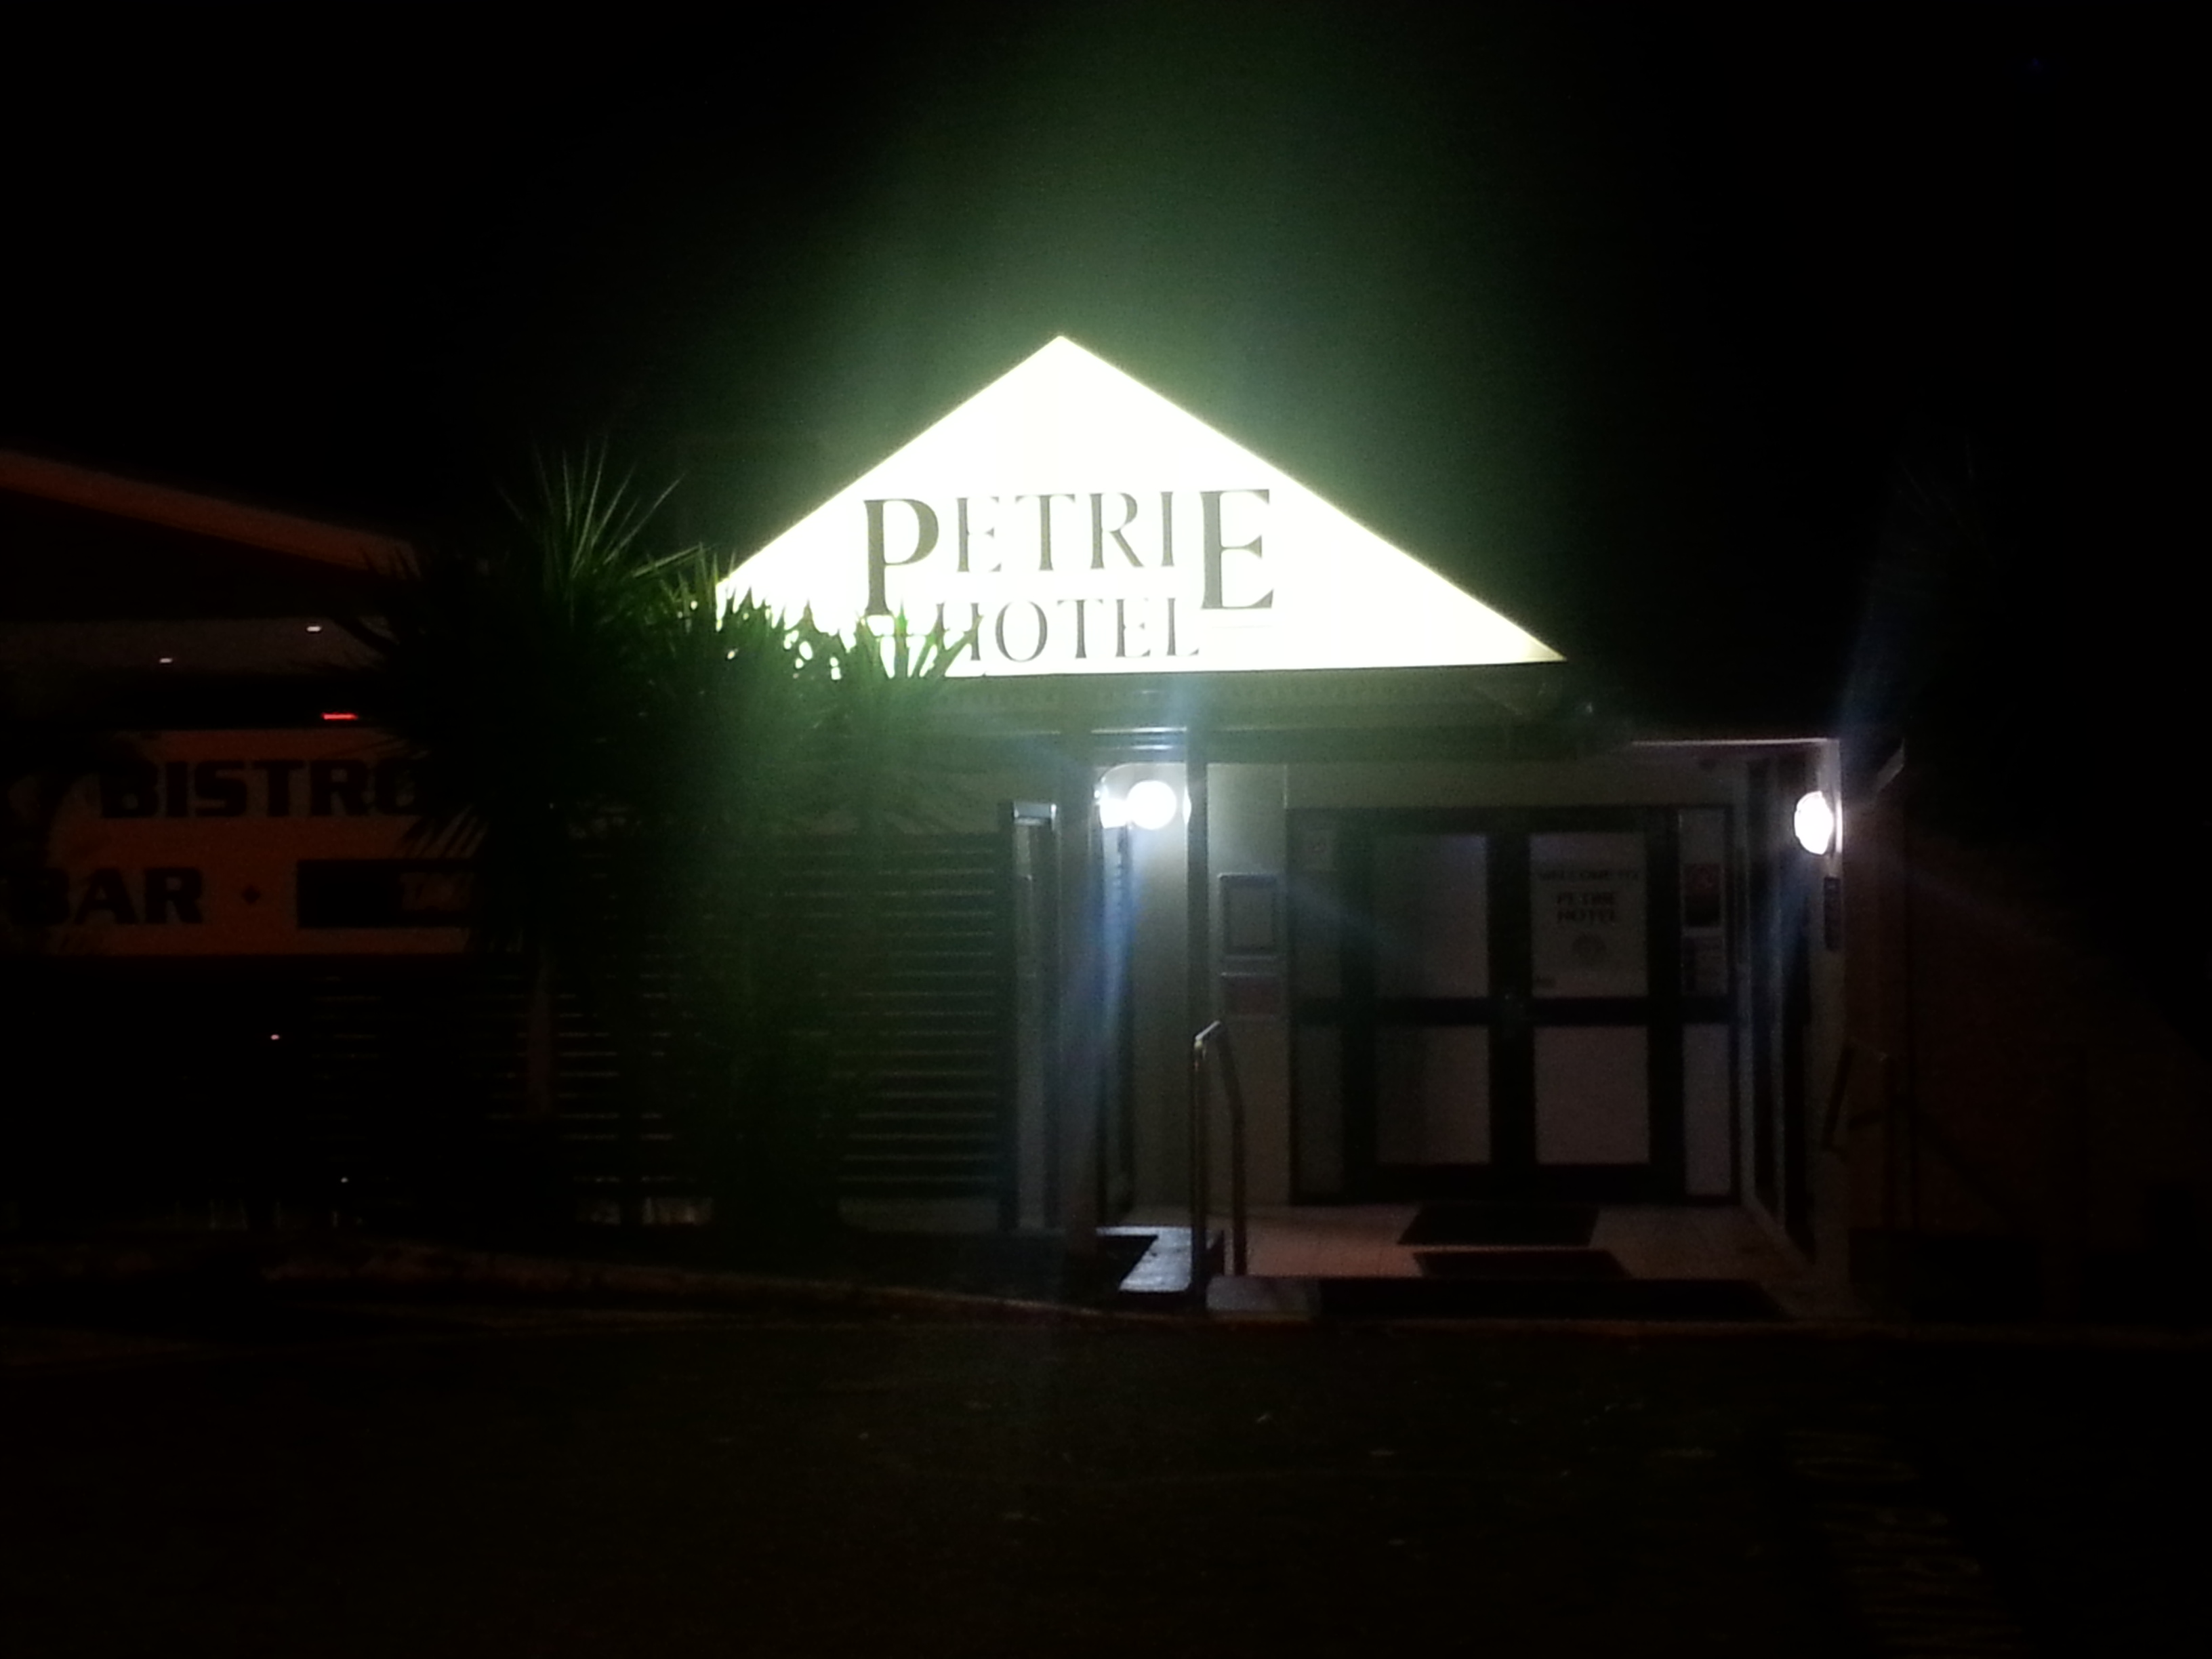 Petrie Hotel - eAccommodation